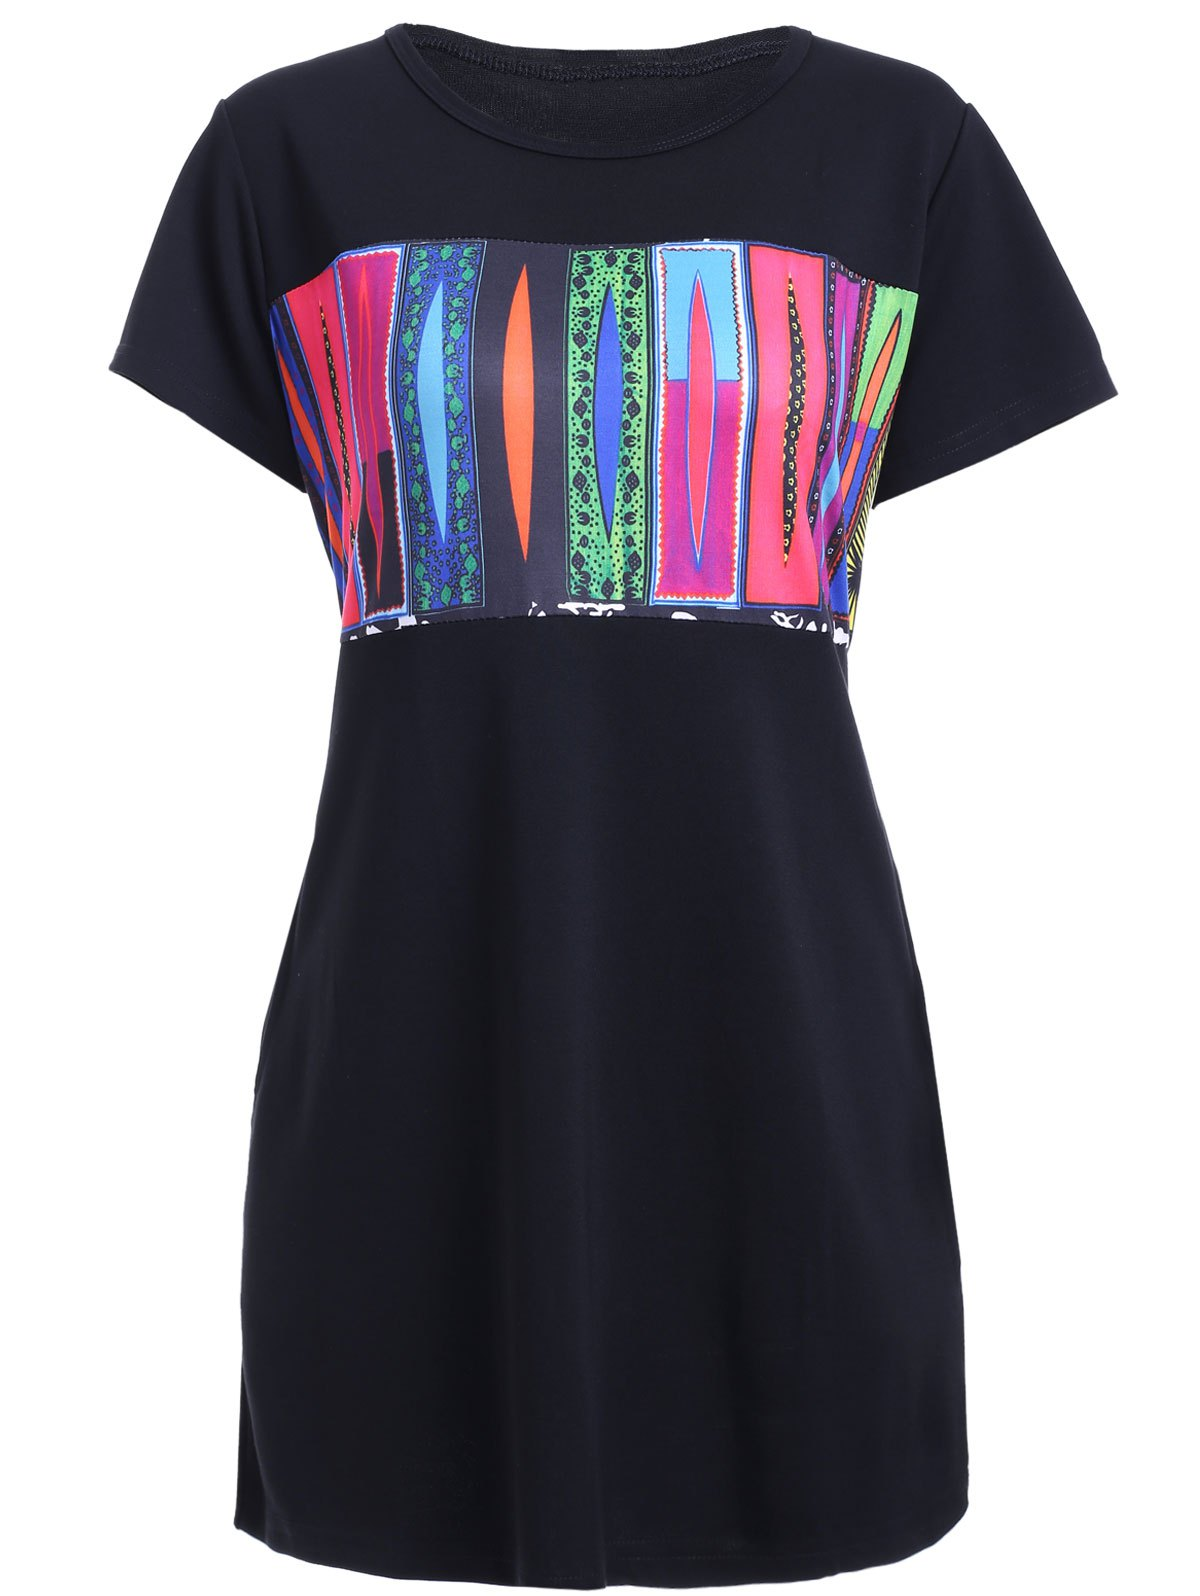 Women's Graceful Colorful Print Shift Dress - BLACK L